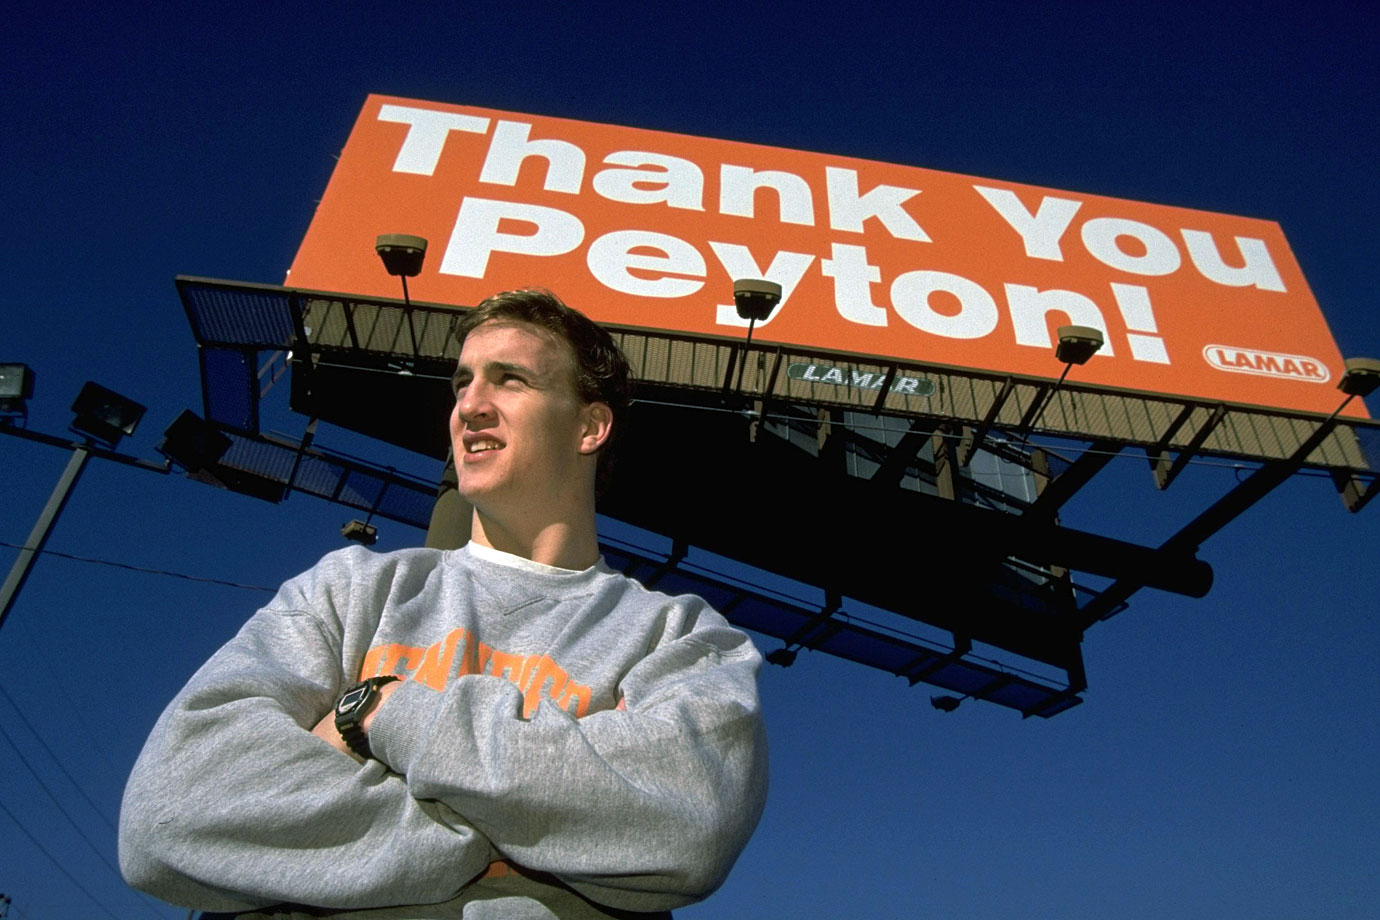 Peyton Manning poses underneath a billboard thanking him for returning to Tennessee for his senior year and forgoing the NFL Draft.